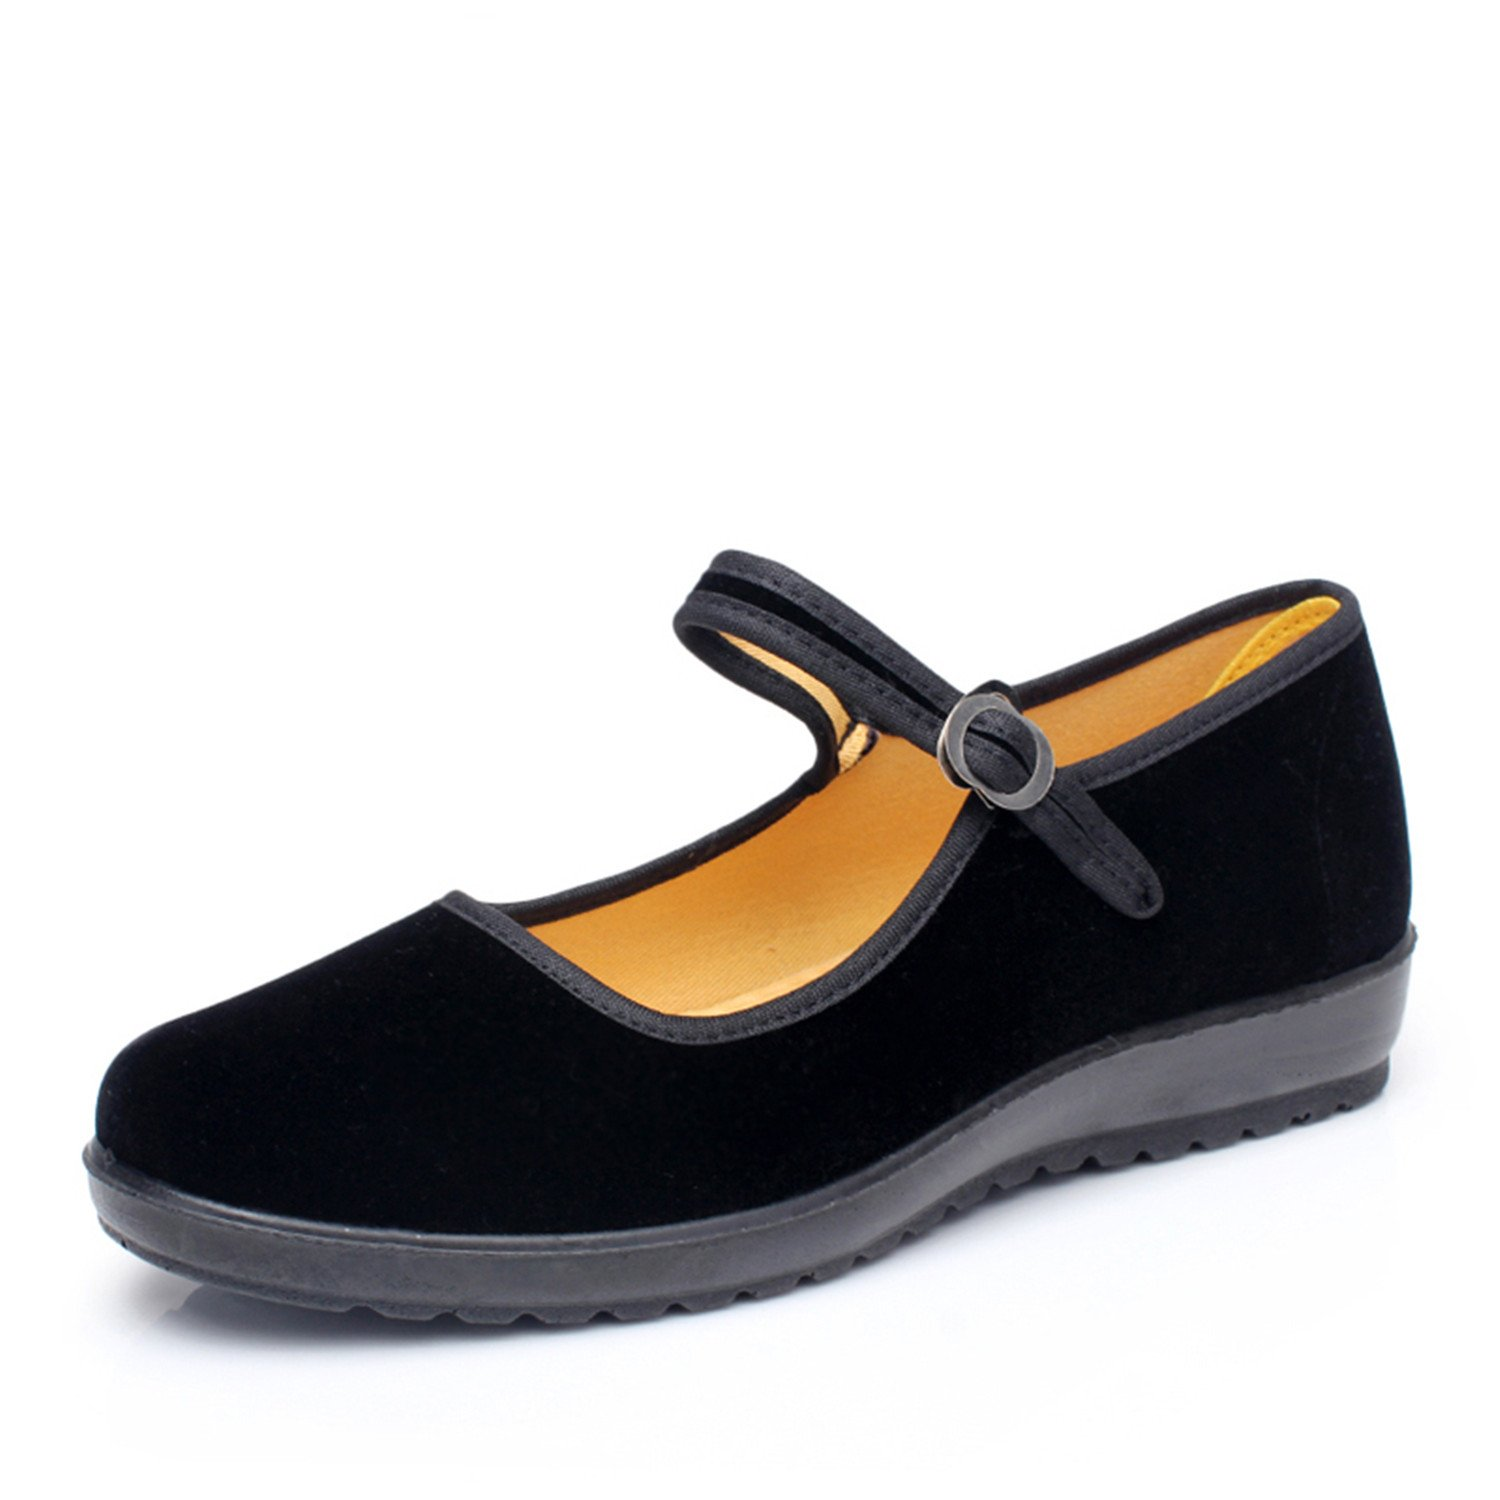 Surprising Day Classic Old Beijing Cloth Shoes Women Flats Soft Comfortable Mother Shoes Black Mary Janes Non-Slip Sole Cotton Breathable